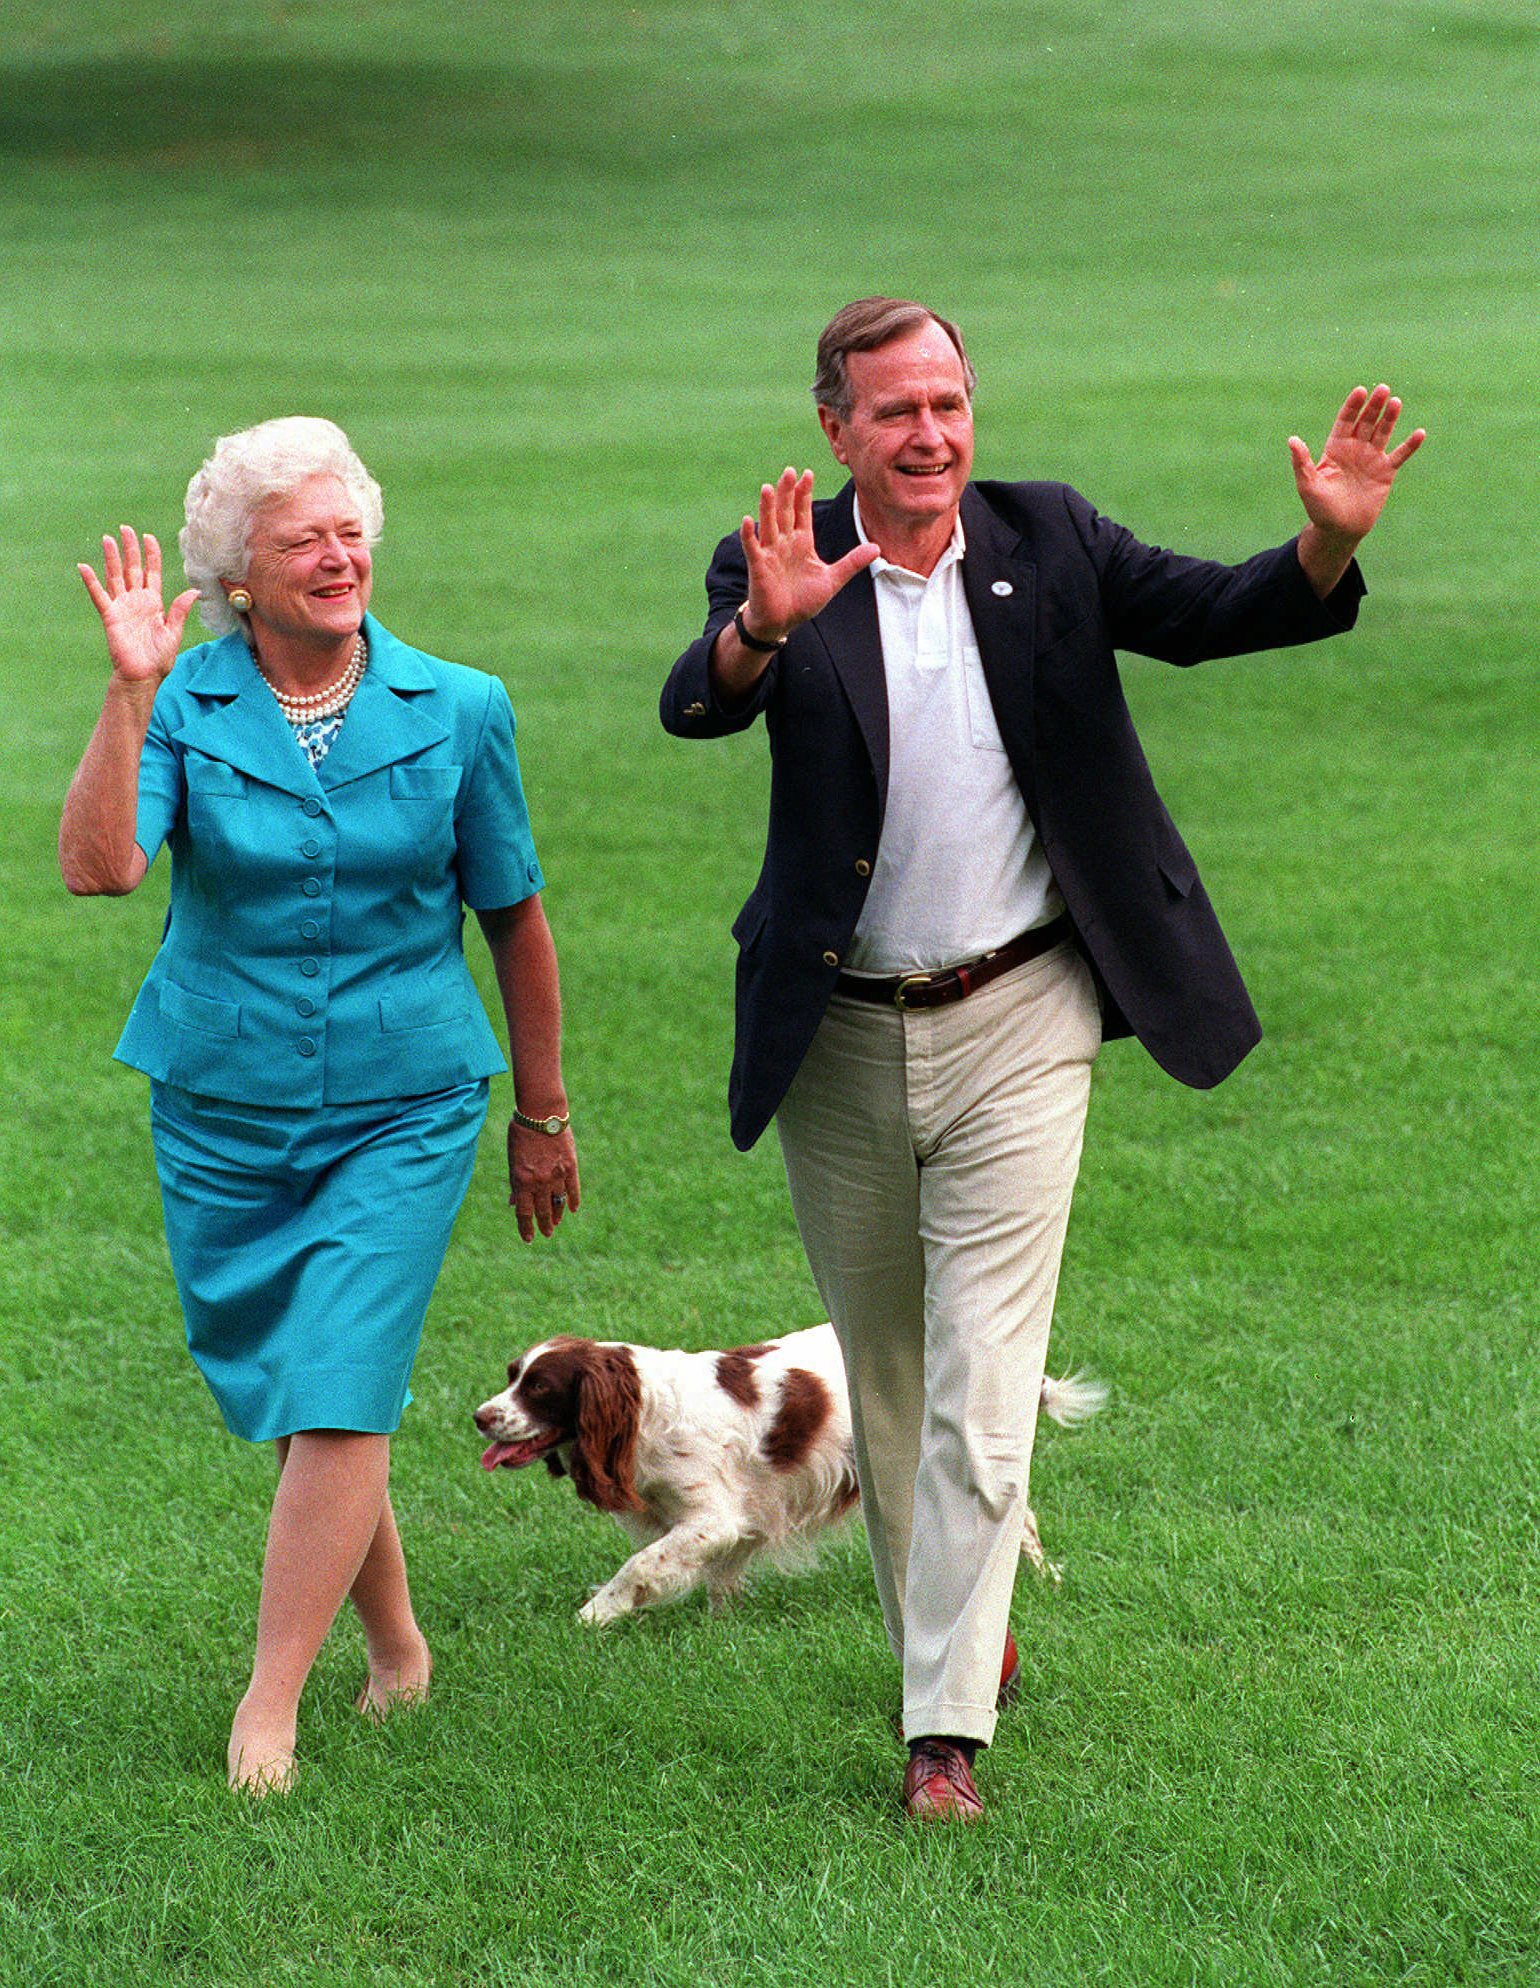 Happy 73rd Wedding Anniversary to President and Mrs.  @GeorgeHWBush #Couplegoals https://t.co/dB6nYYgt8E